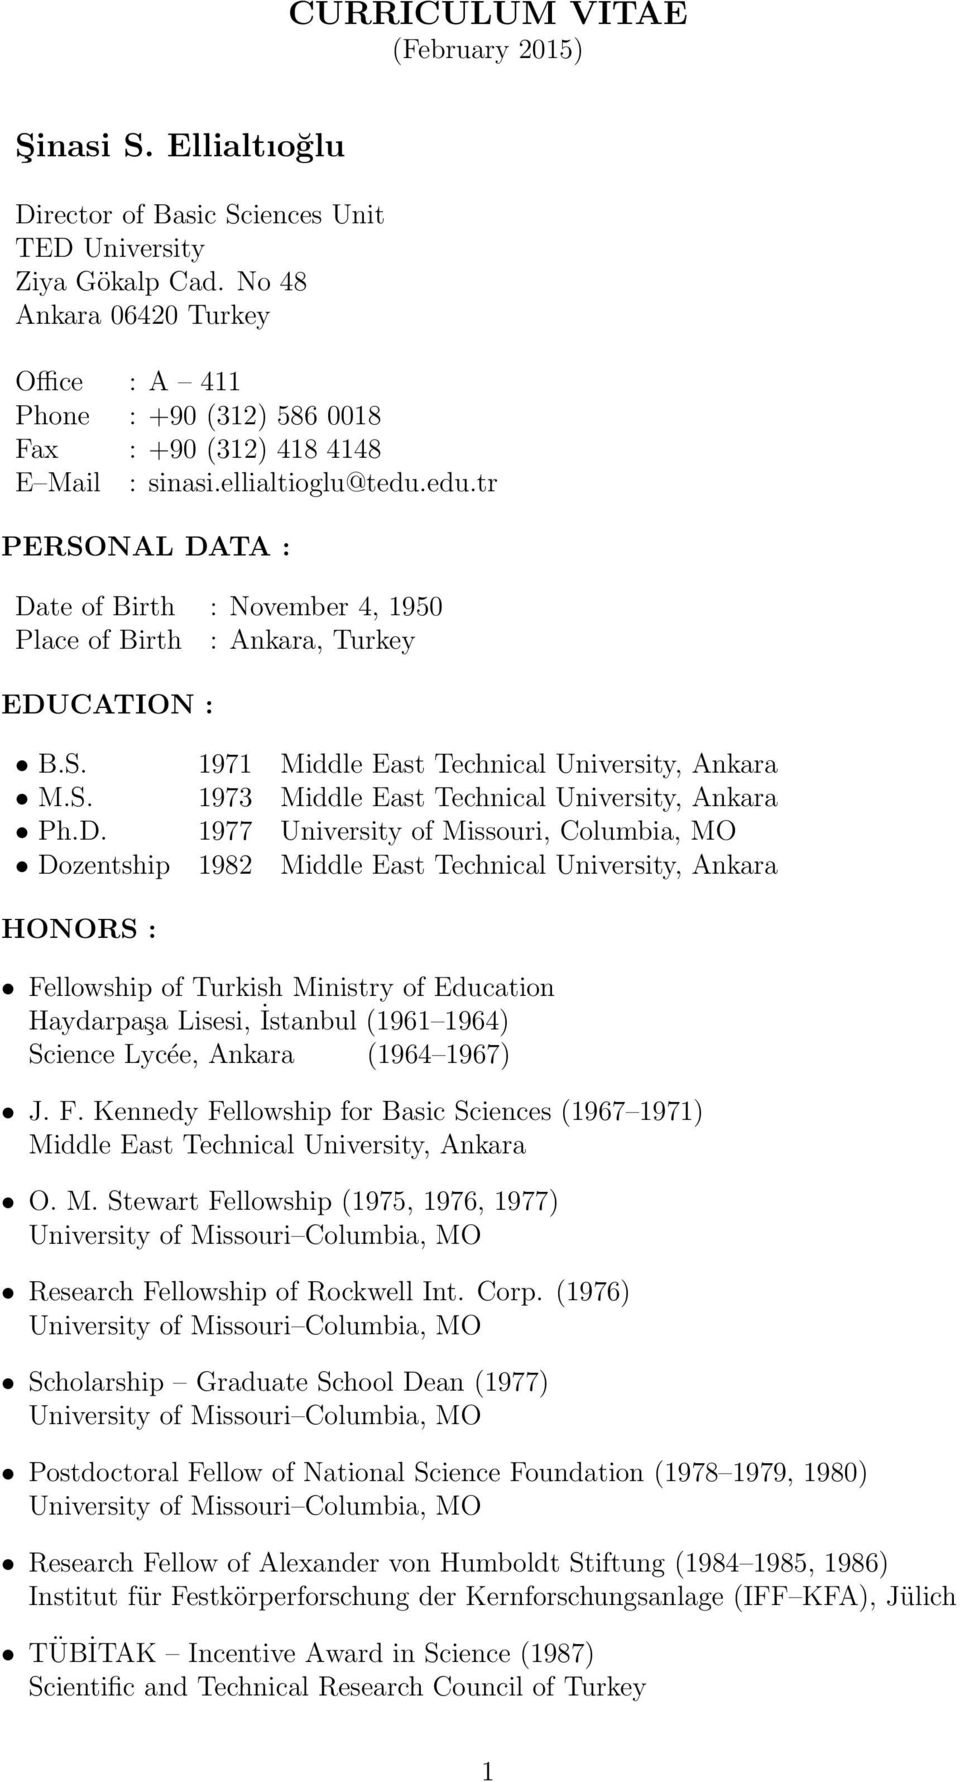 edu.tr PERSONAL DATA : Date of Birth : November 4, 1950 Place of Birth : Ankara, Turkey EDUCATION : B.S. 1971 Middle East Technical University, Ankara M.S. 1973 Middle East Technical University, Ankara Ph.